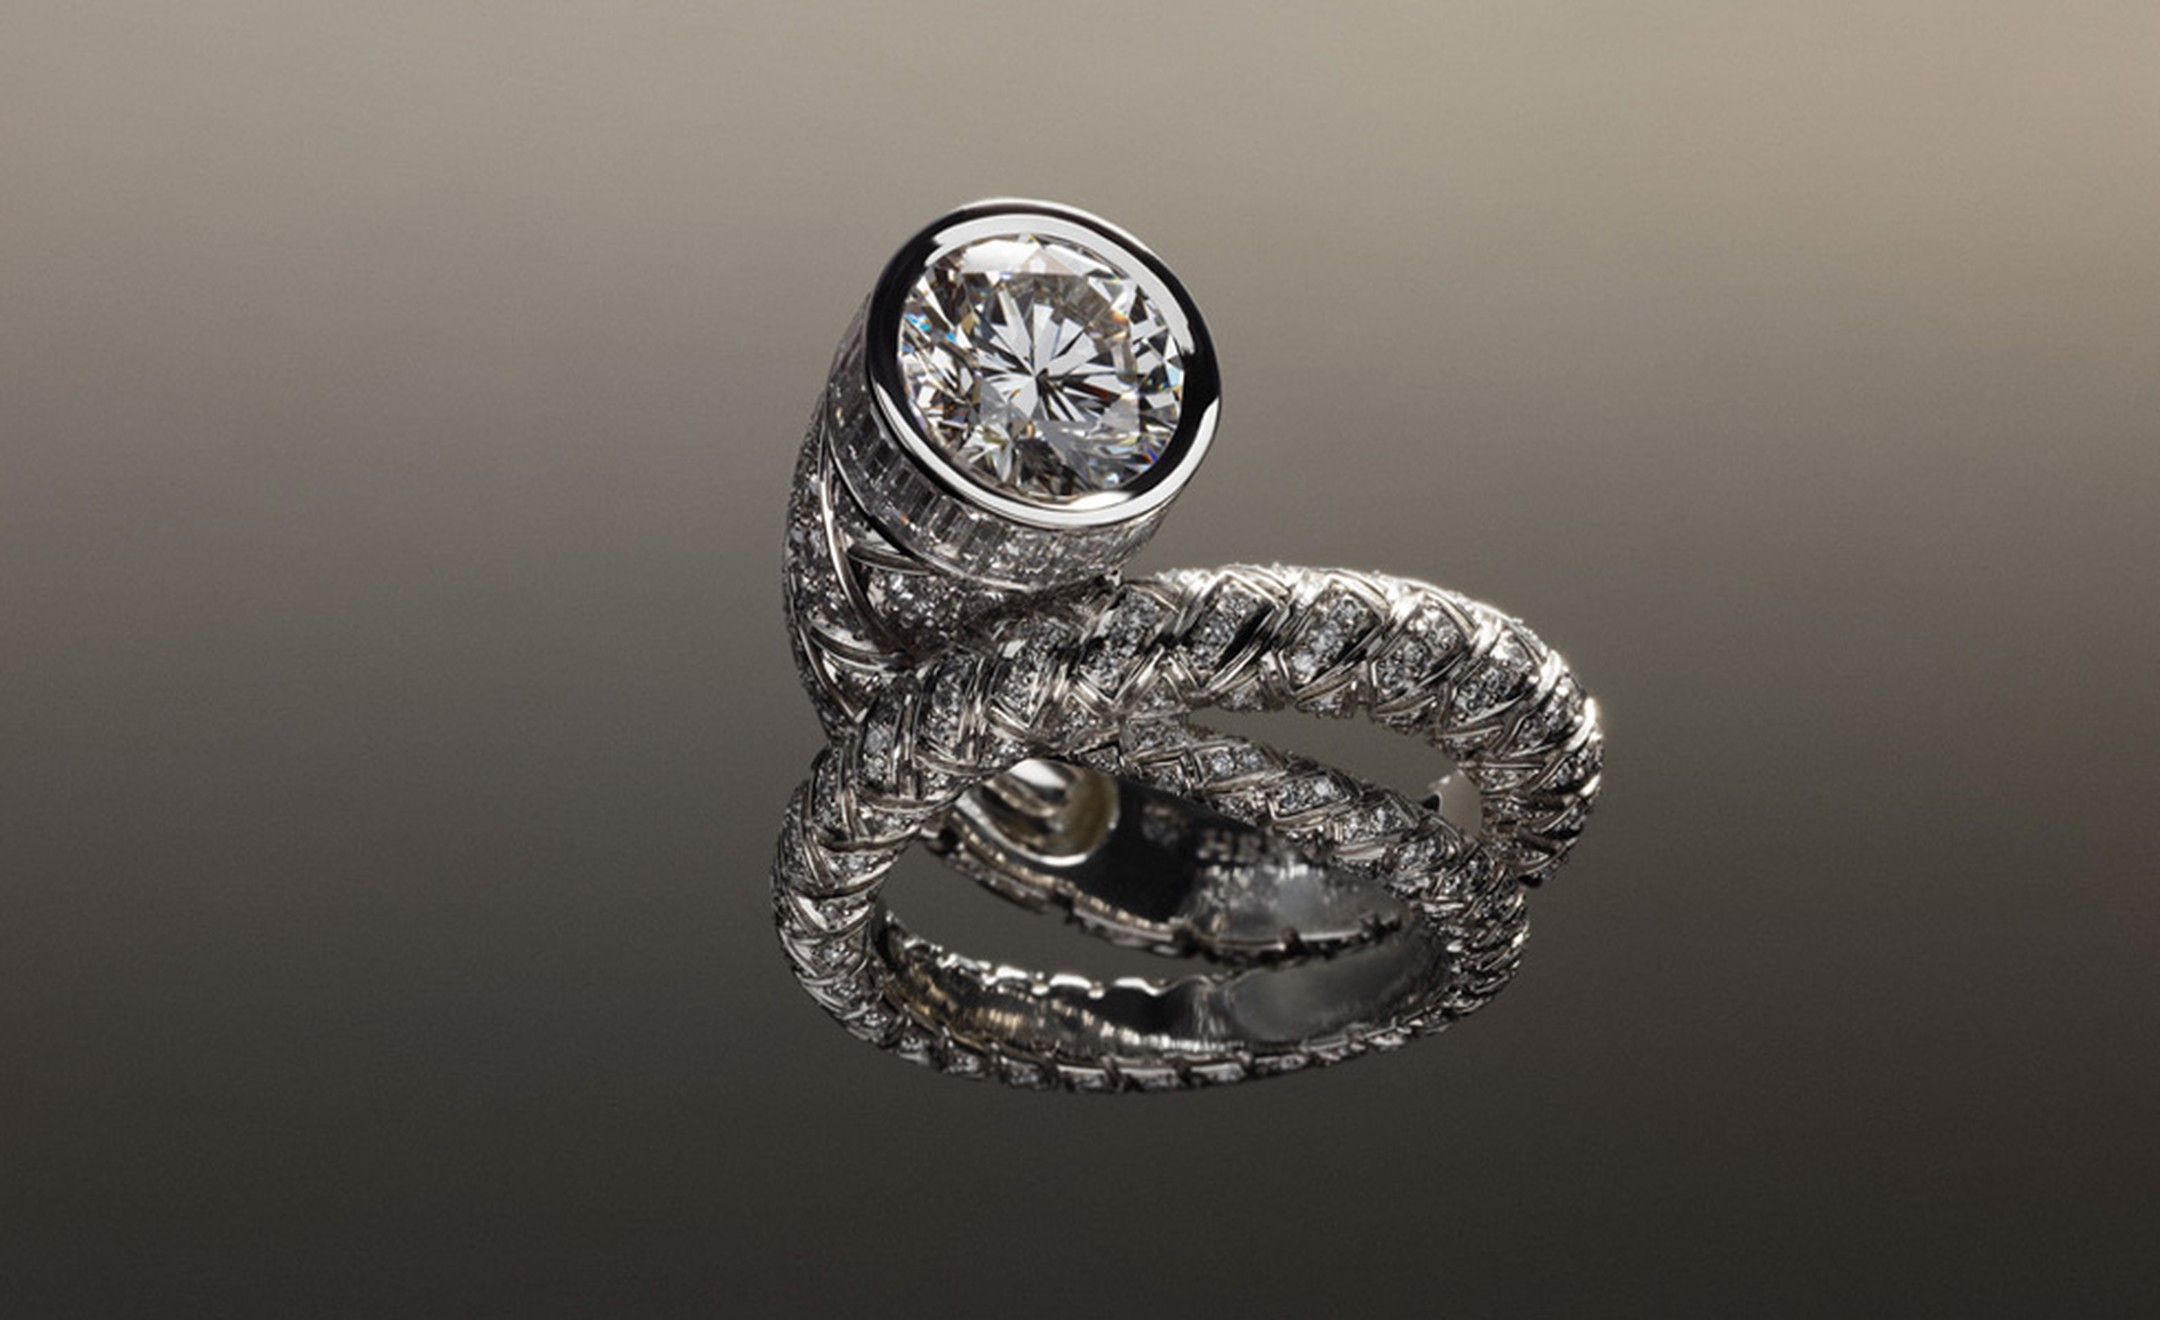 Hermès Fouet ring in platinum with diamonds.